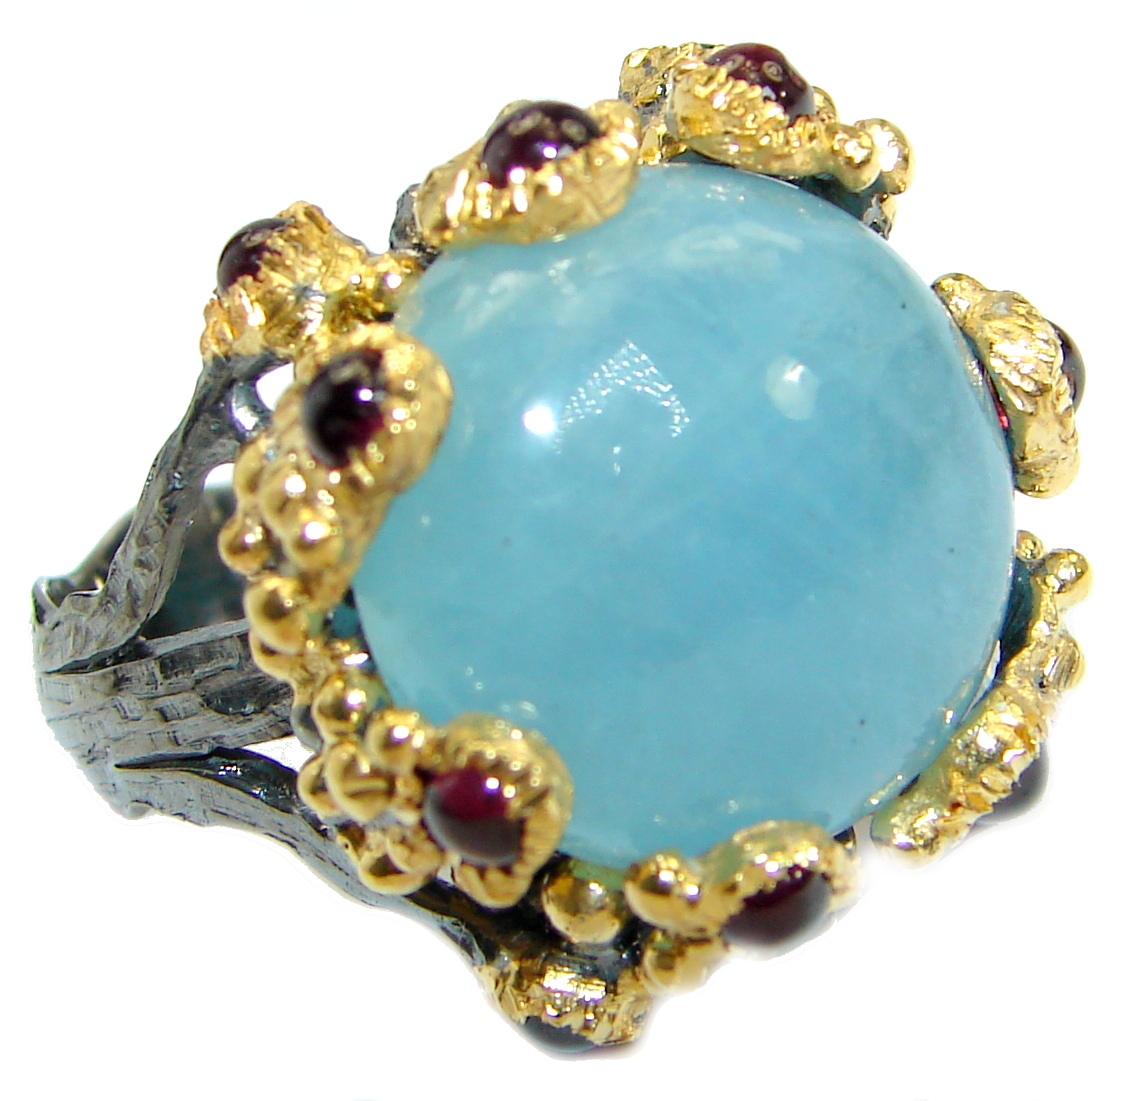 Passiom Fruit Natural 18.5 ct. Aquamarine Gold Plated over Sterling Silver Ring s. 7 127875